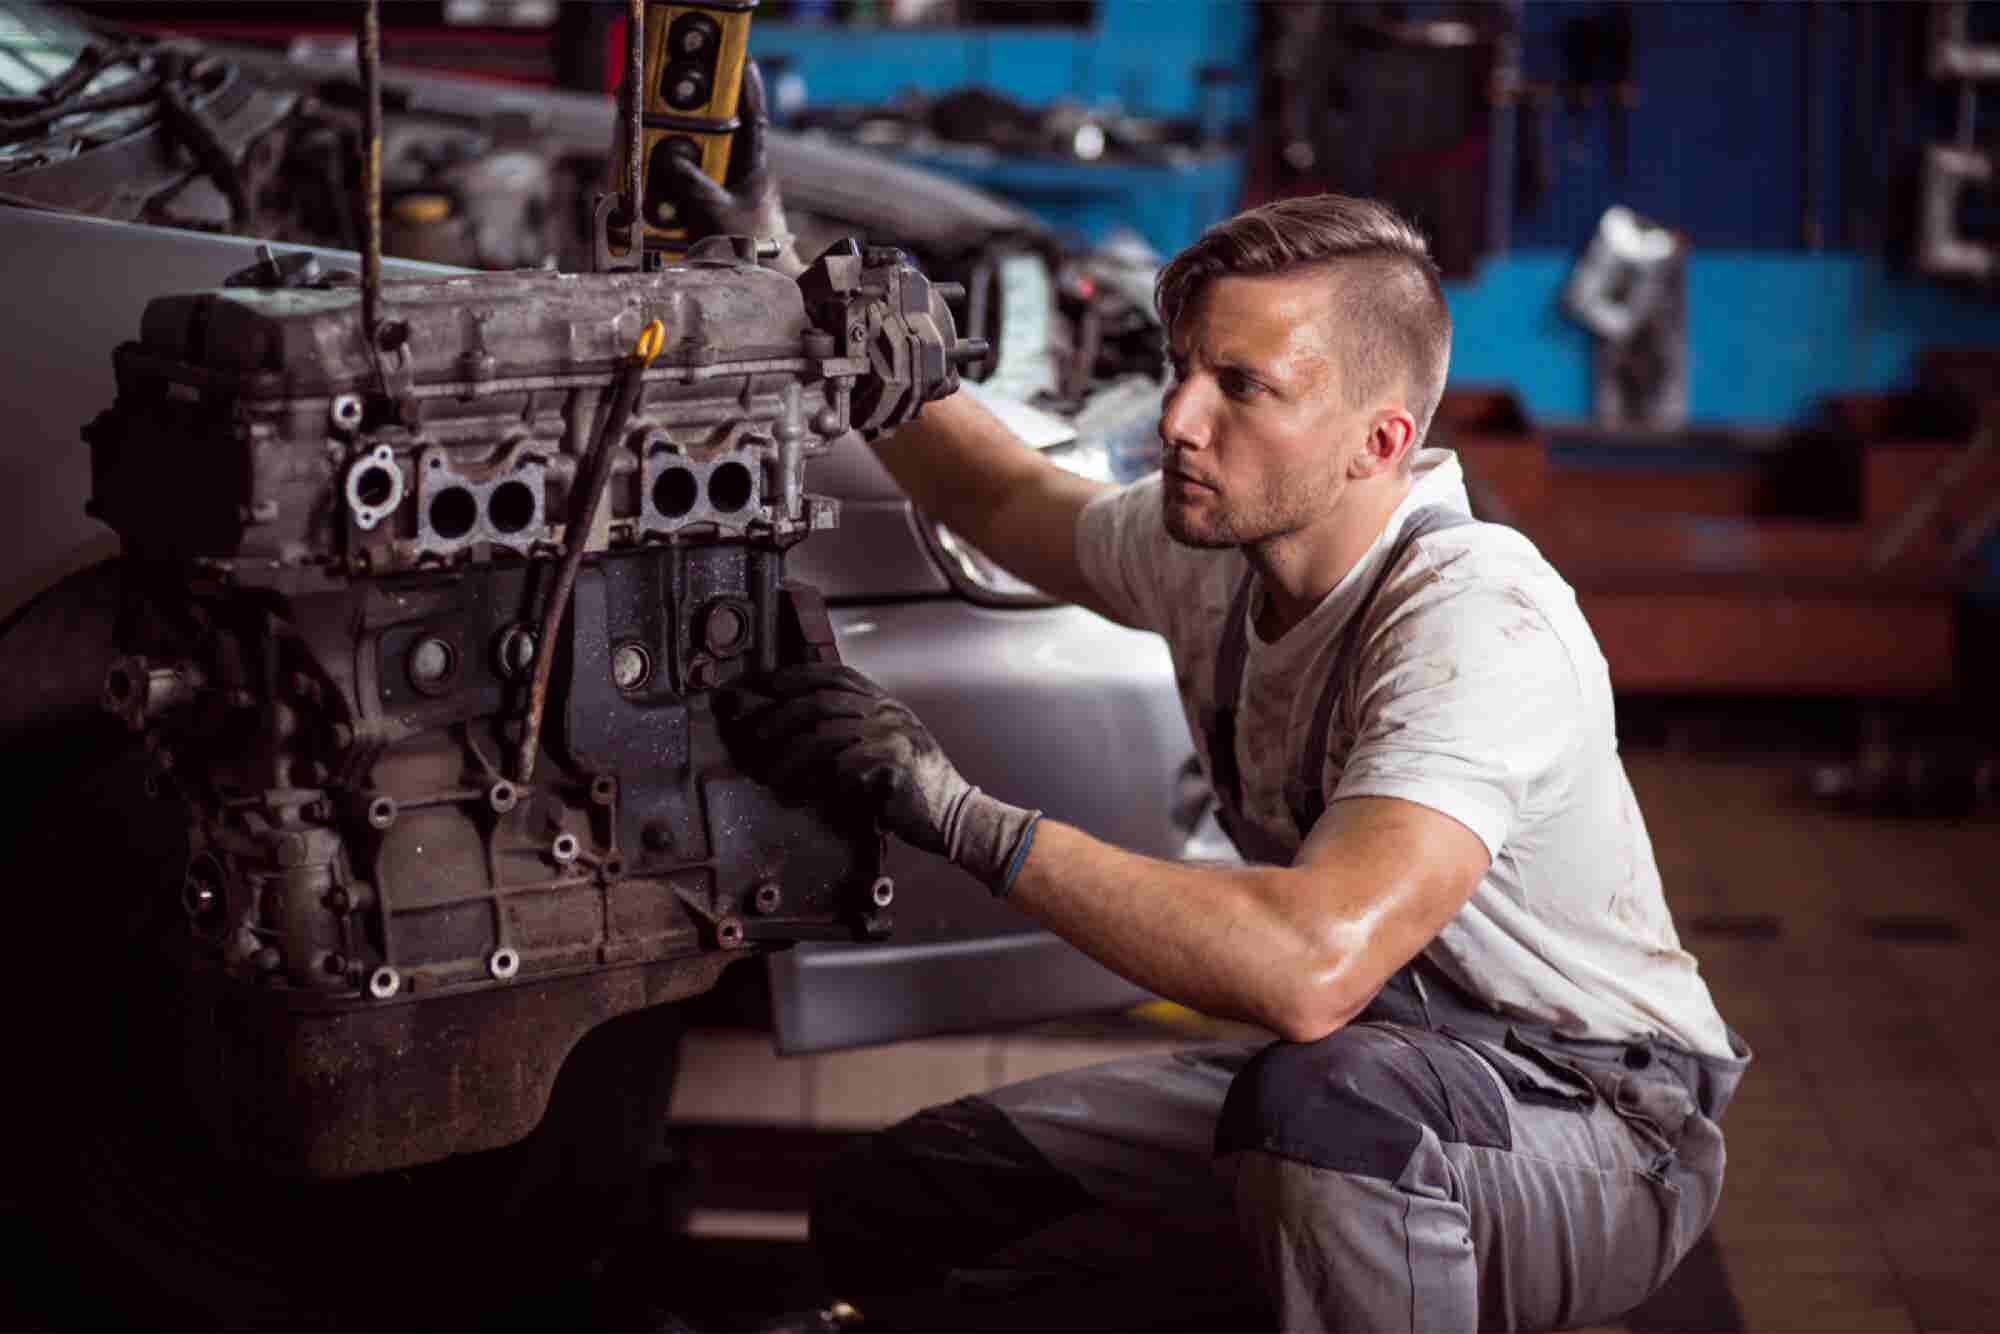 The 5 Leadership Lessons That Fixing Cars Taught Me